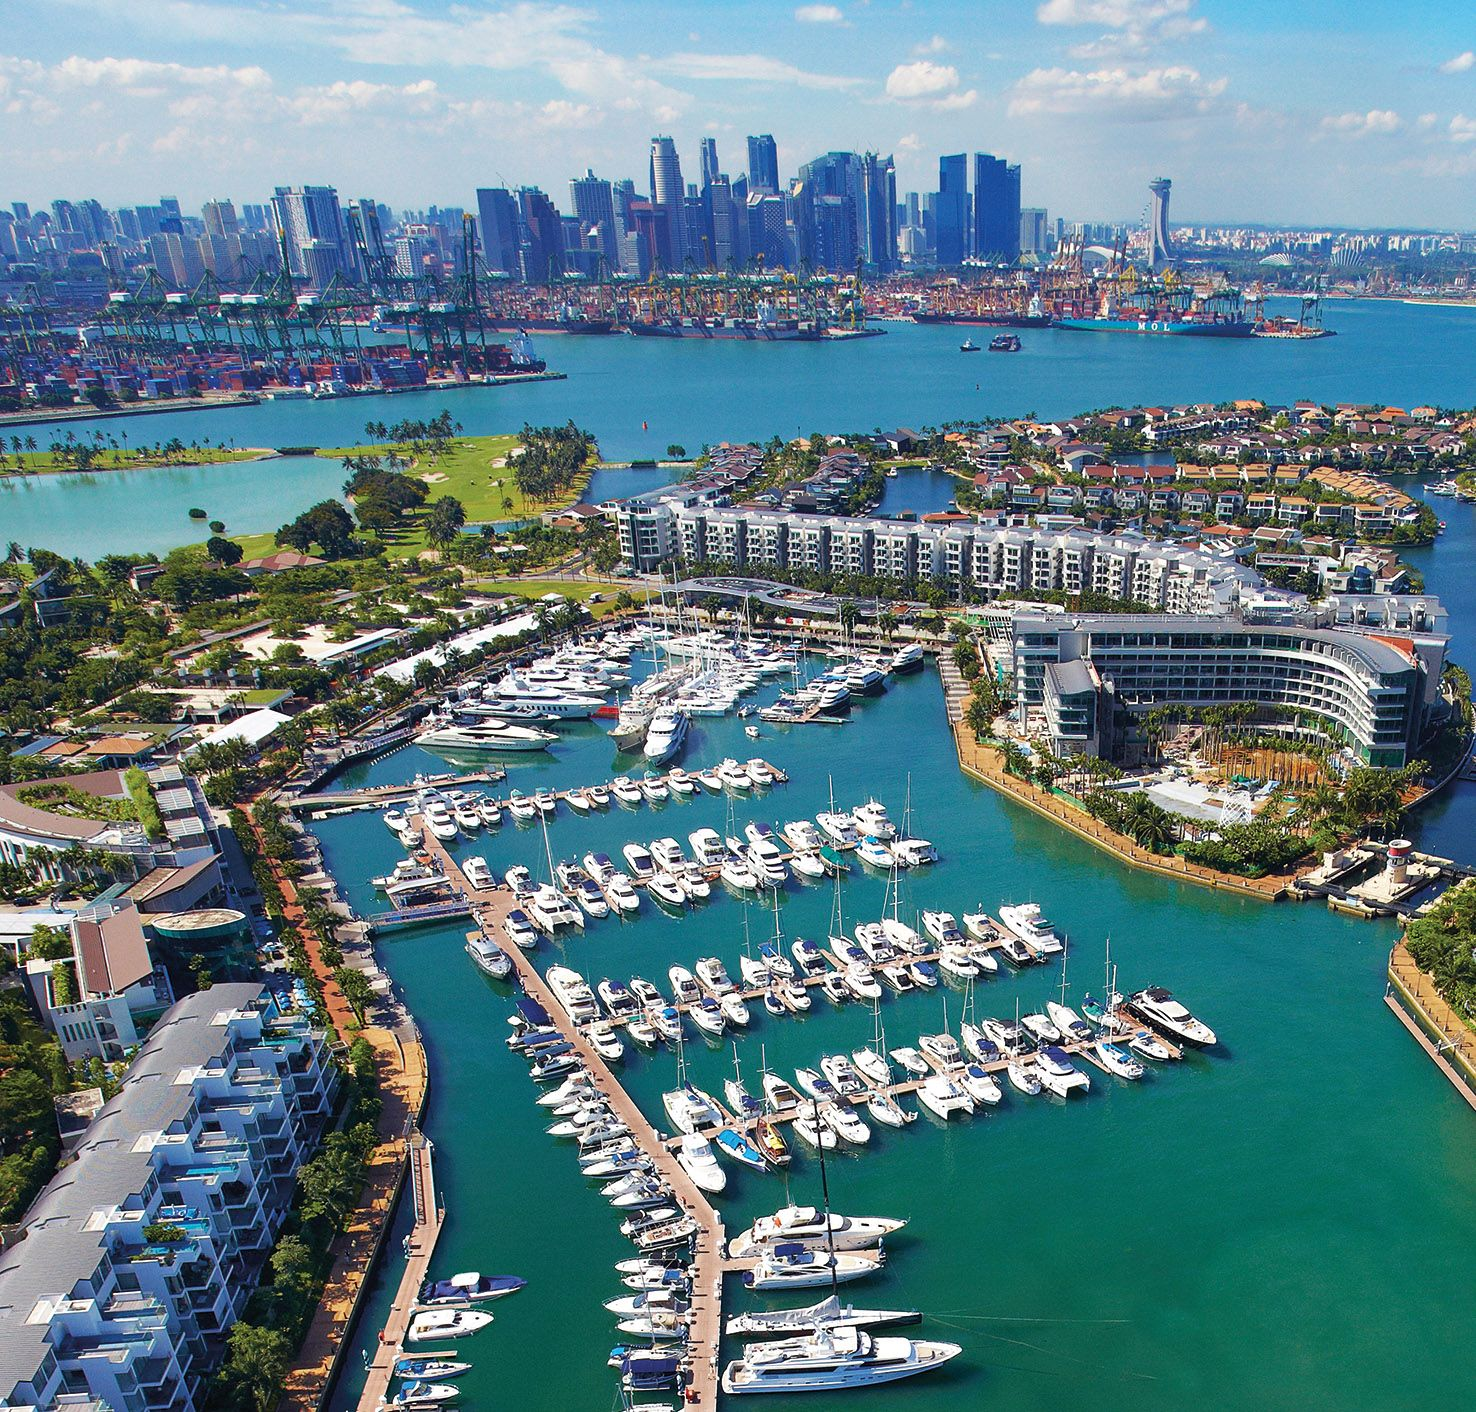 Who Is Behind The Top Marinas In The World, Including One°15 Marina Sentosa Cove?